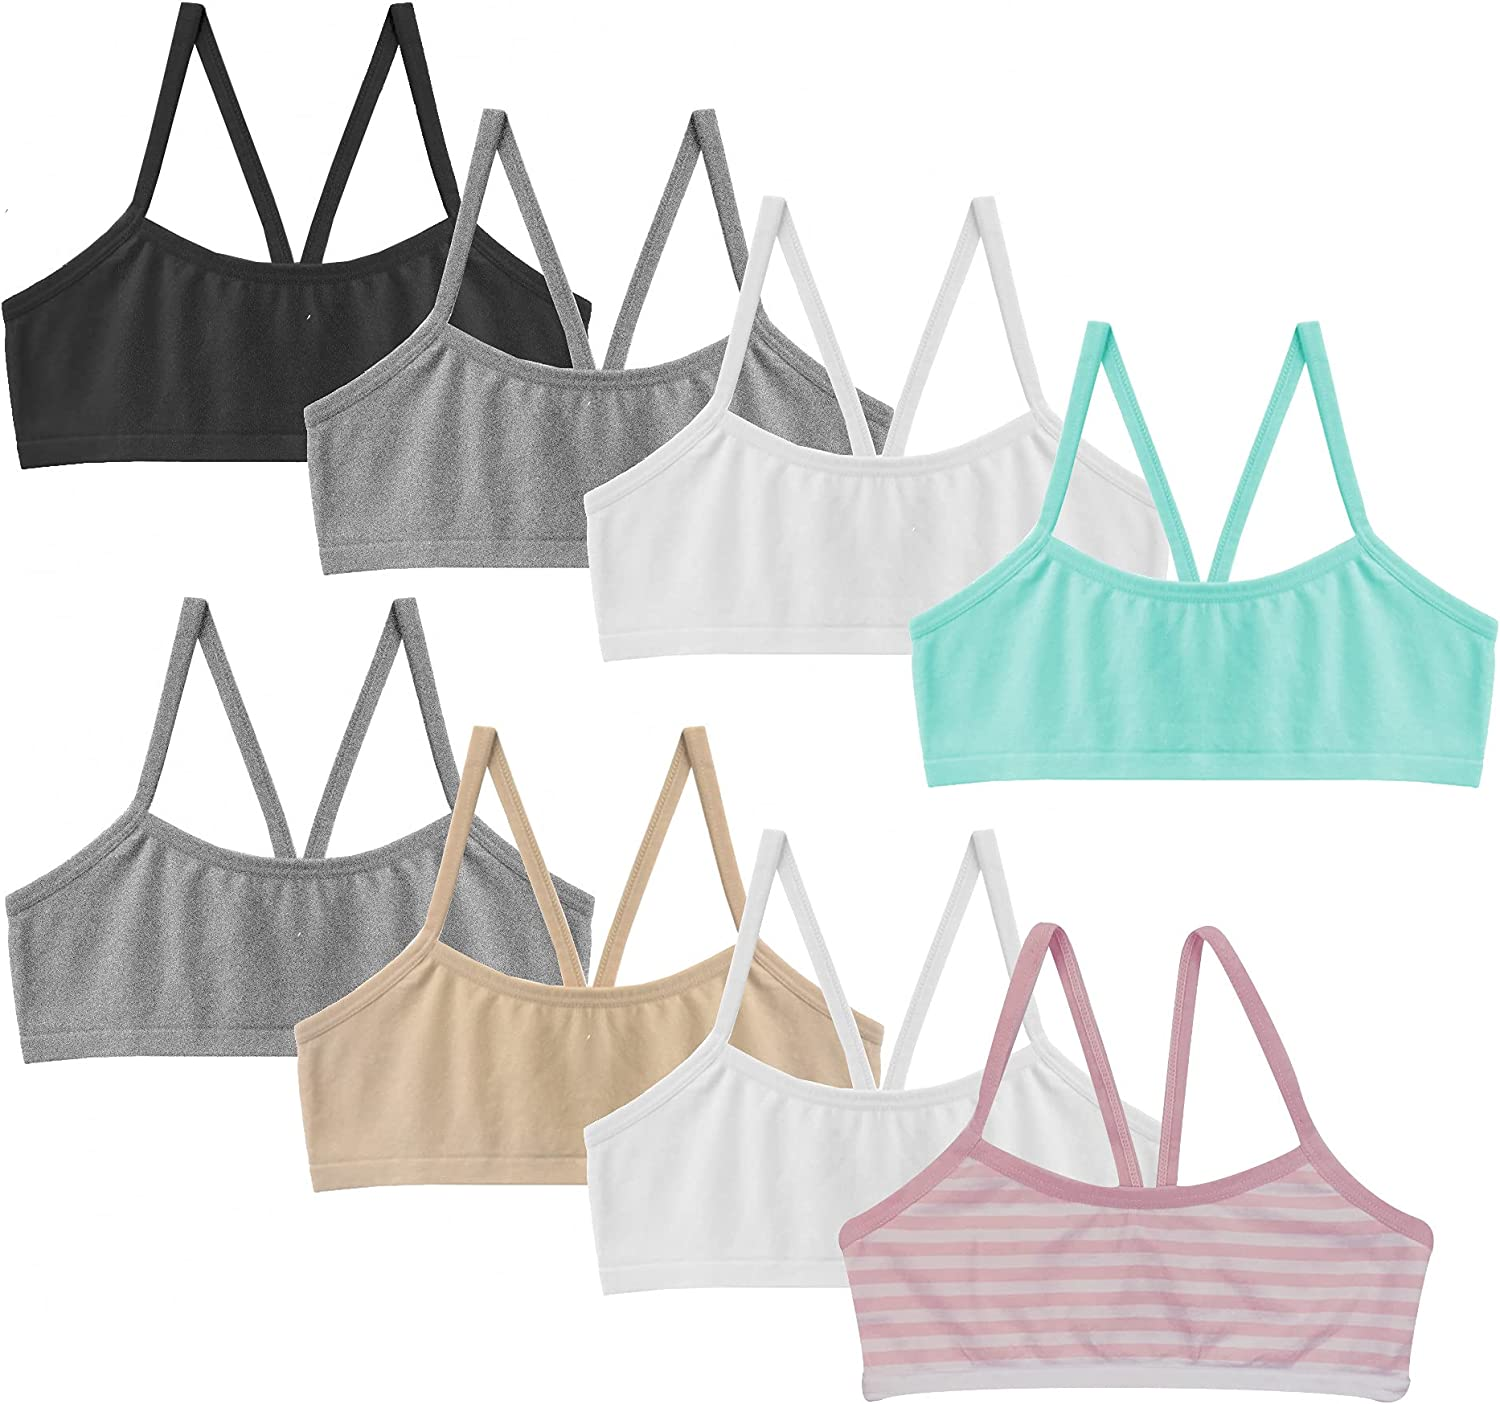 Popular Girl's Max 45% OFF Seamless Crop Manufacturer direct delivery - 8 Pack Bra